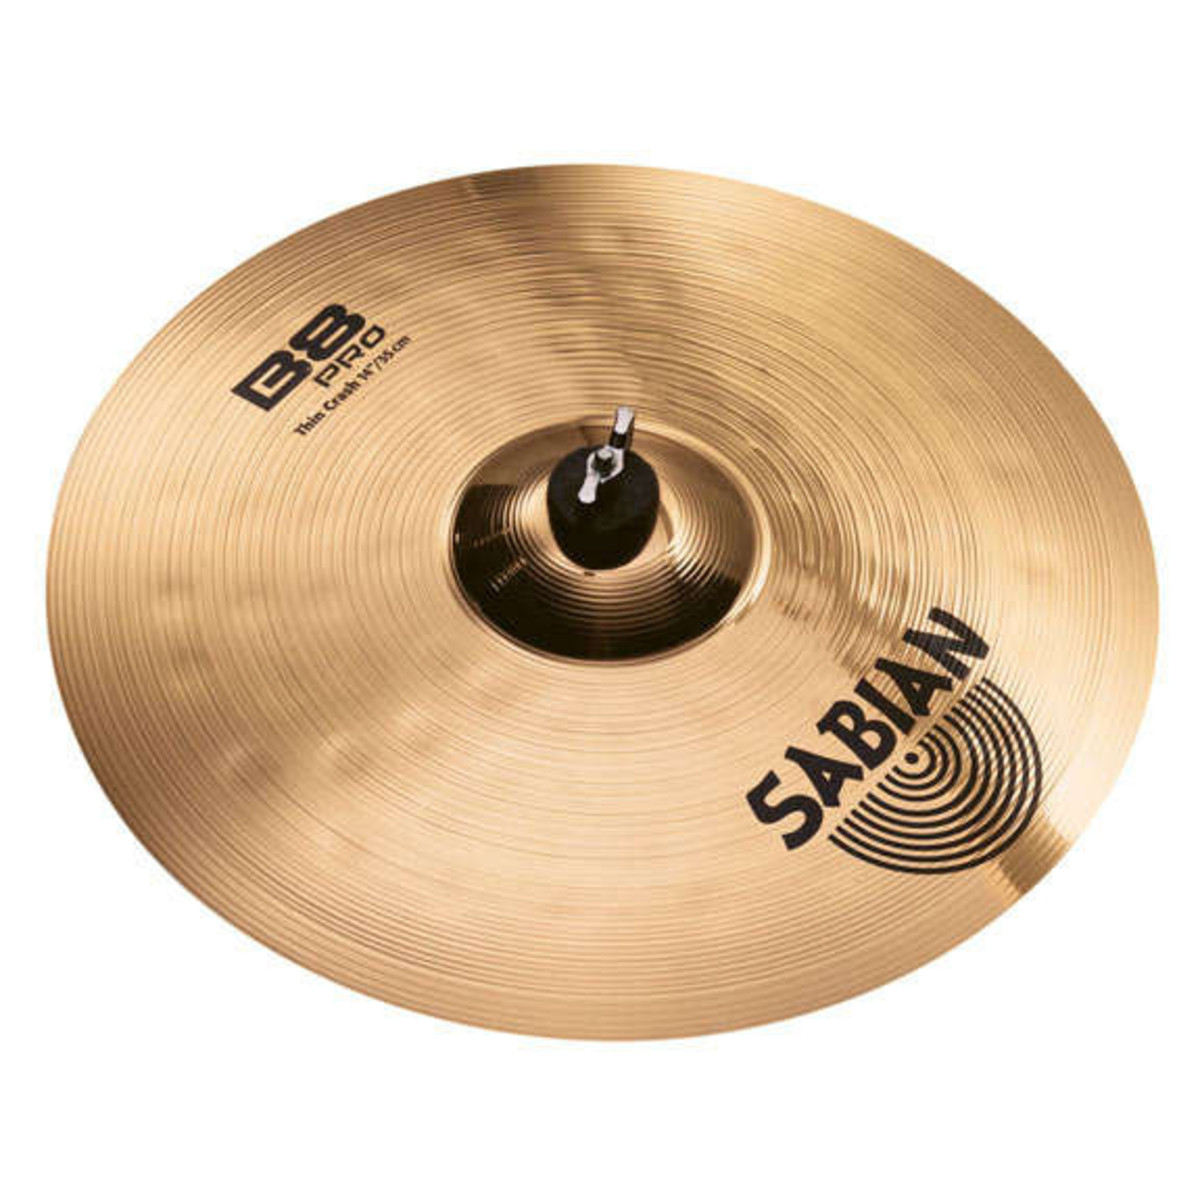 sabian b8 pro 14 39 39 thin crash cymbal at. Black Bedroom Furniture Sets. Home Design Ideas